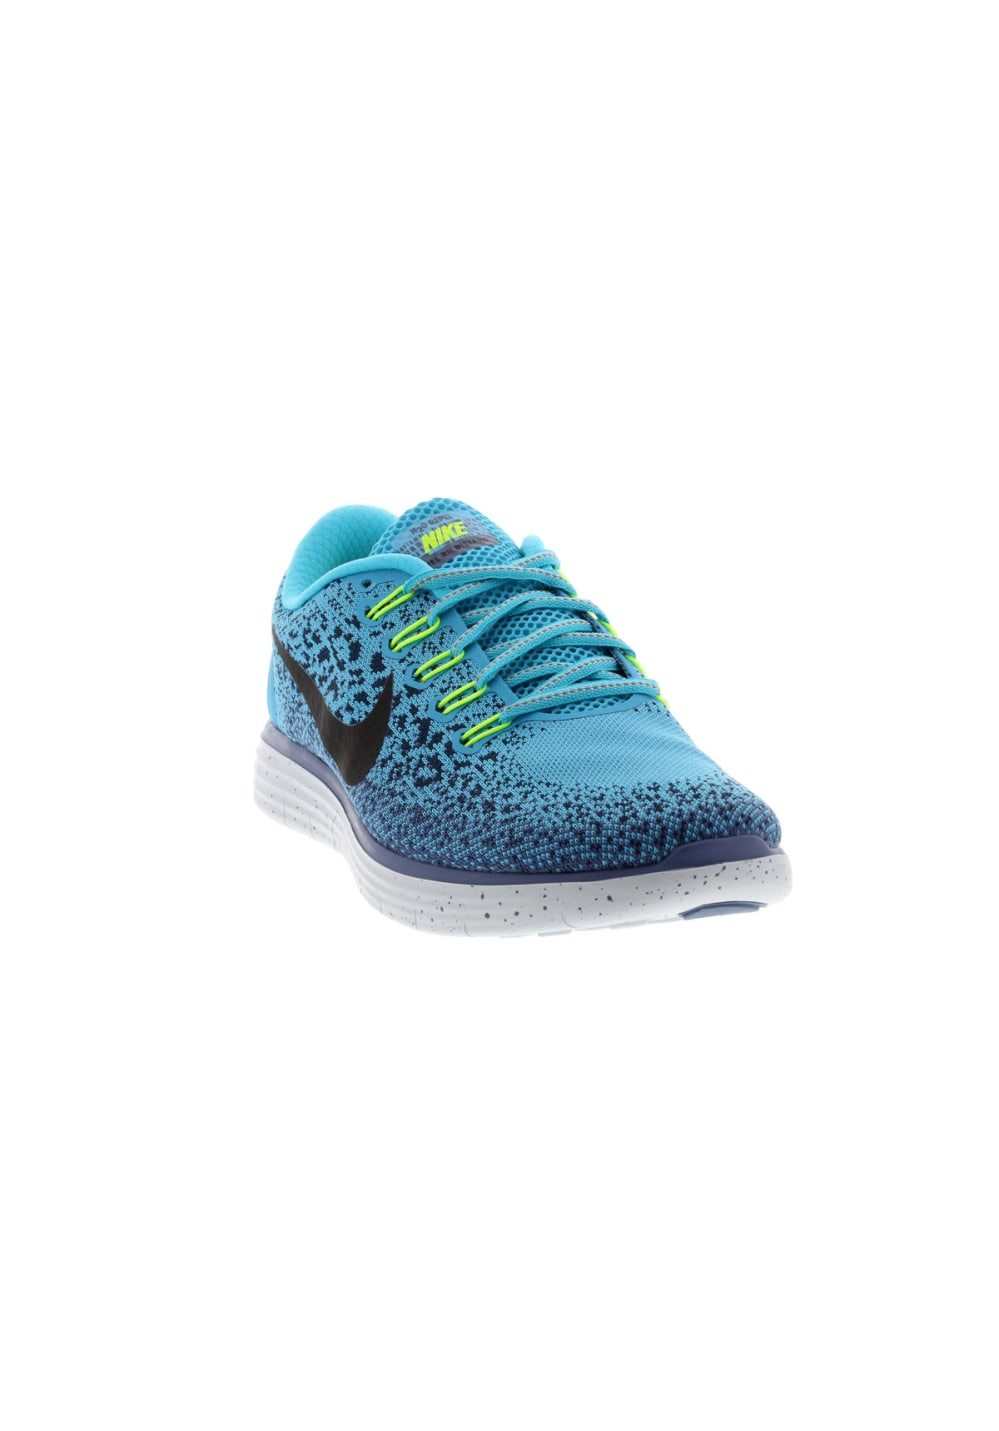 Distance Chaussures Free Running Rn Femme Bleu Shield Nike Pour ygY6bf7v